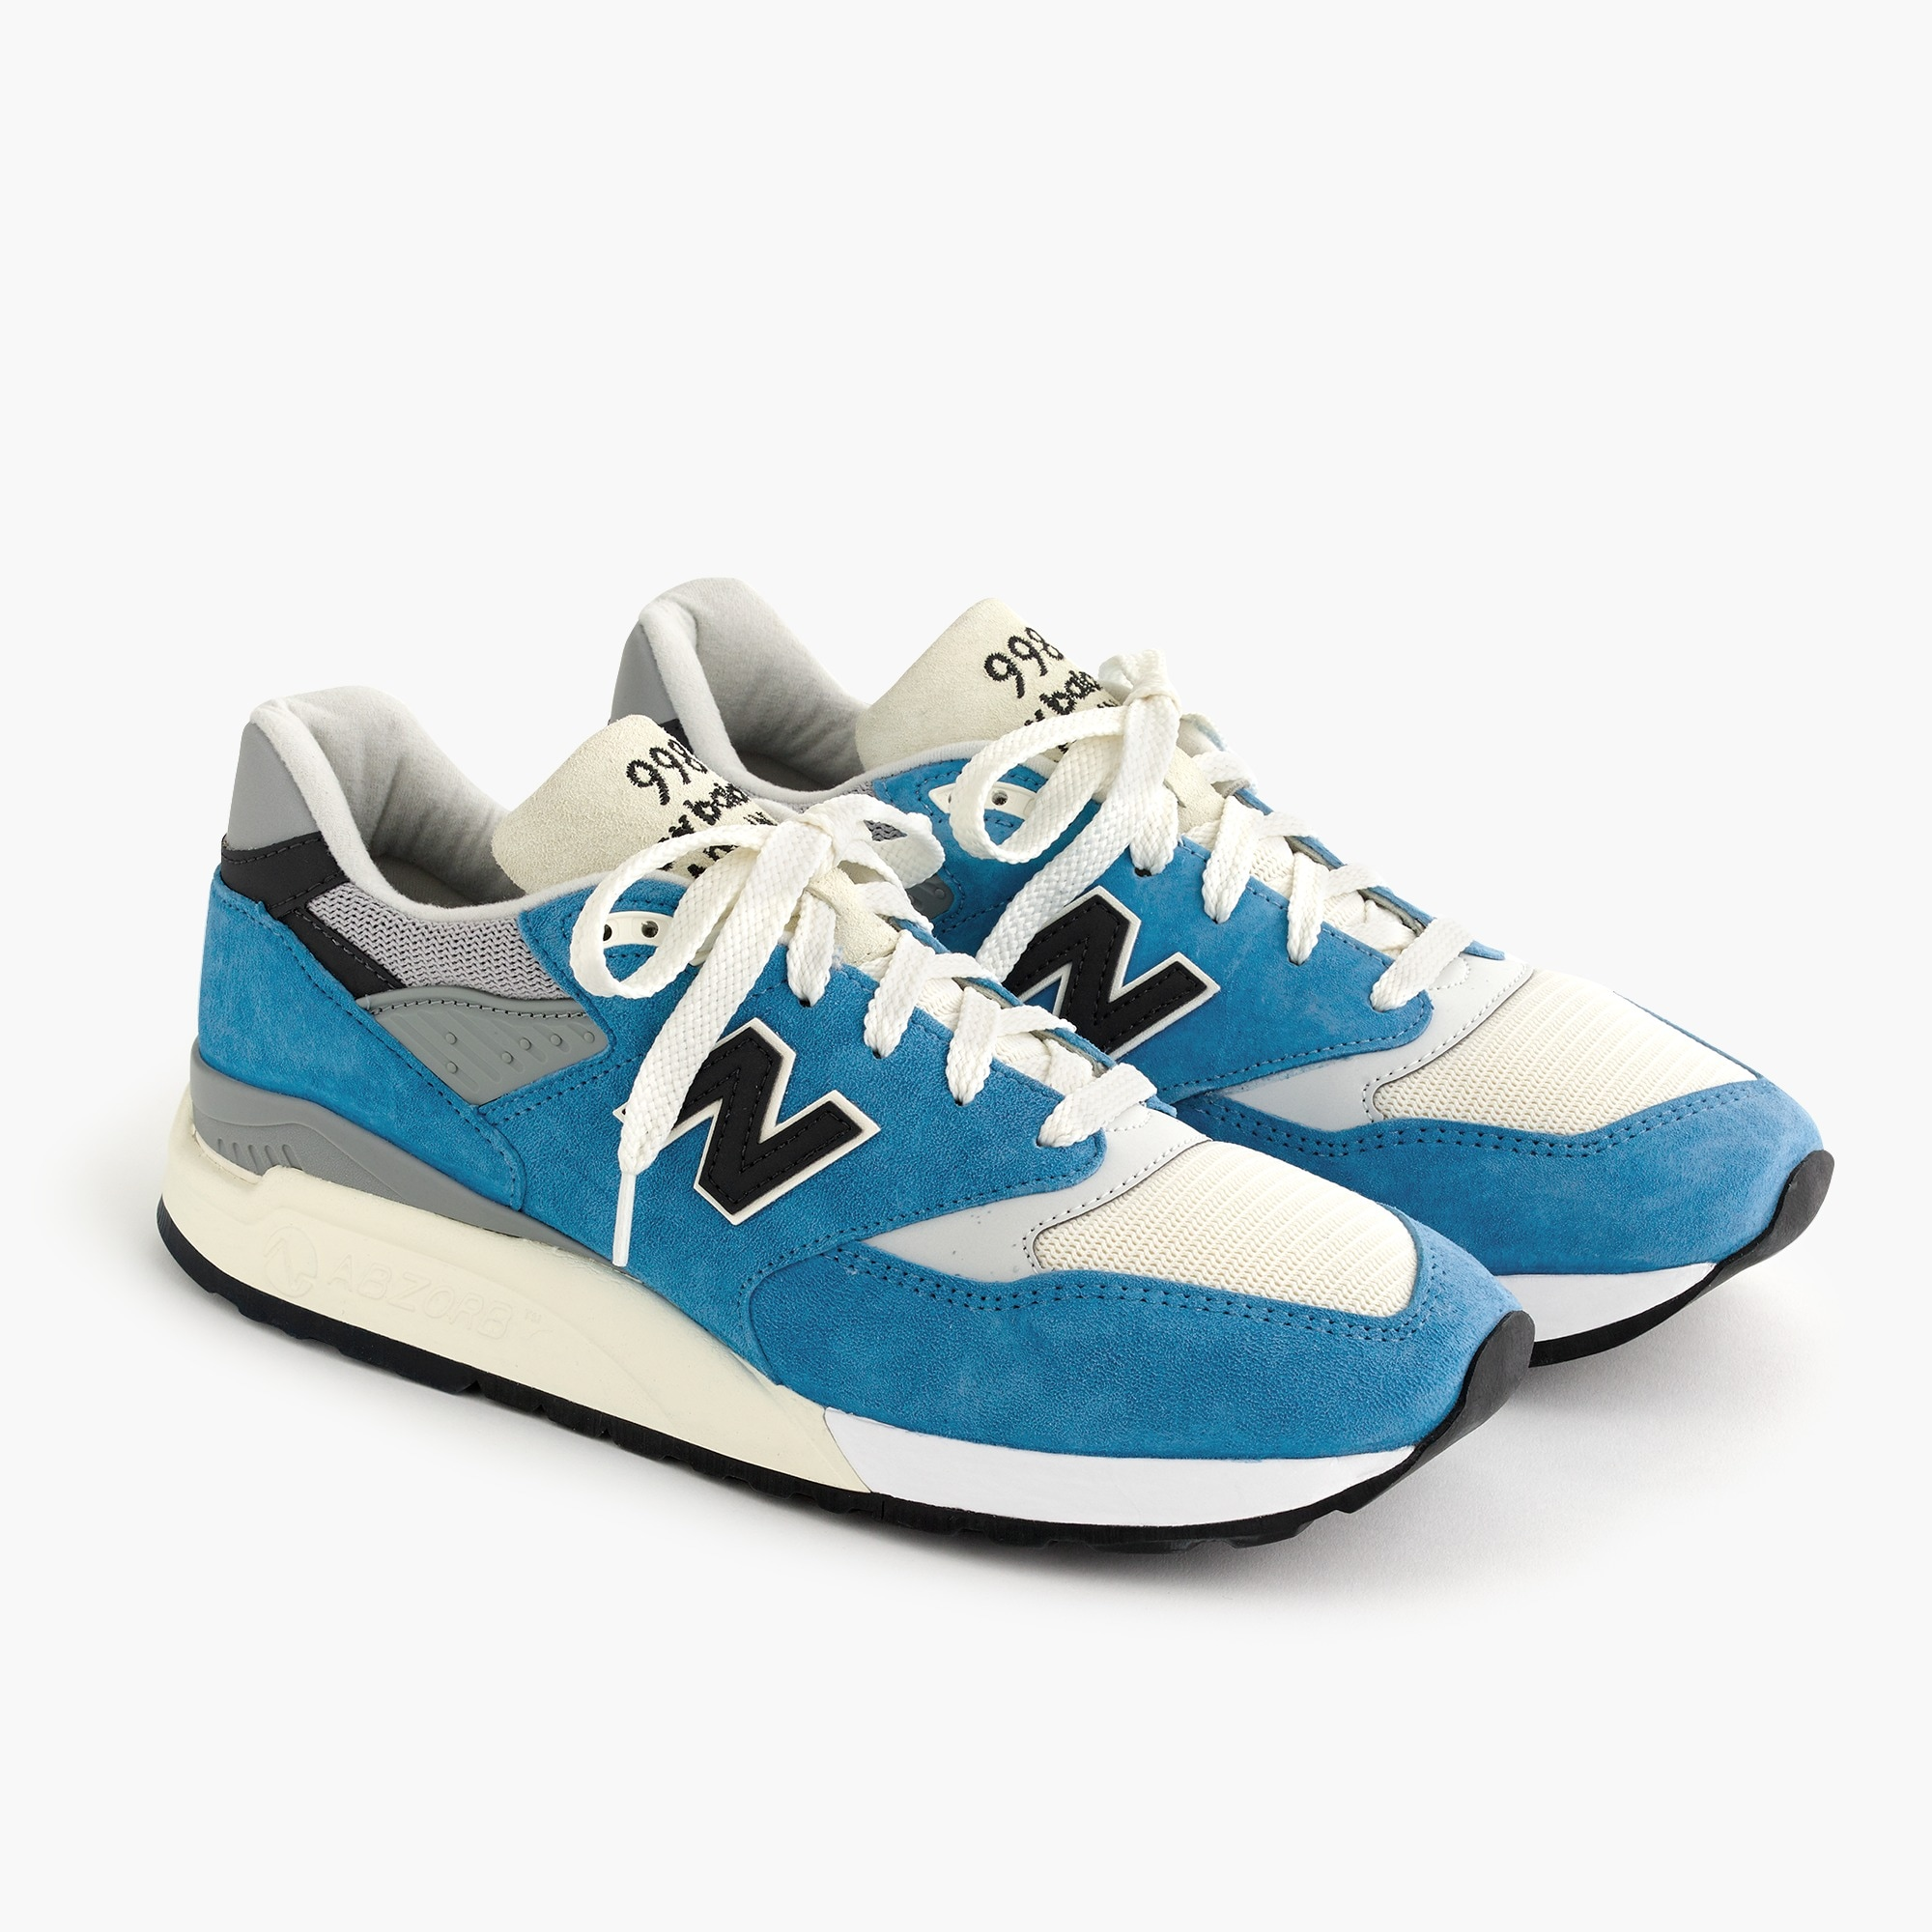 mens New Balance® for J.Crew 998 sneakers in bright blue